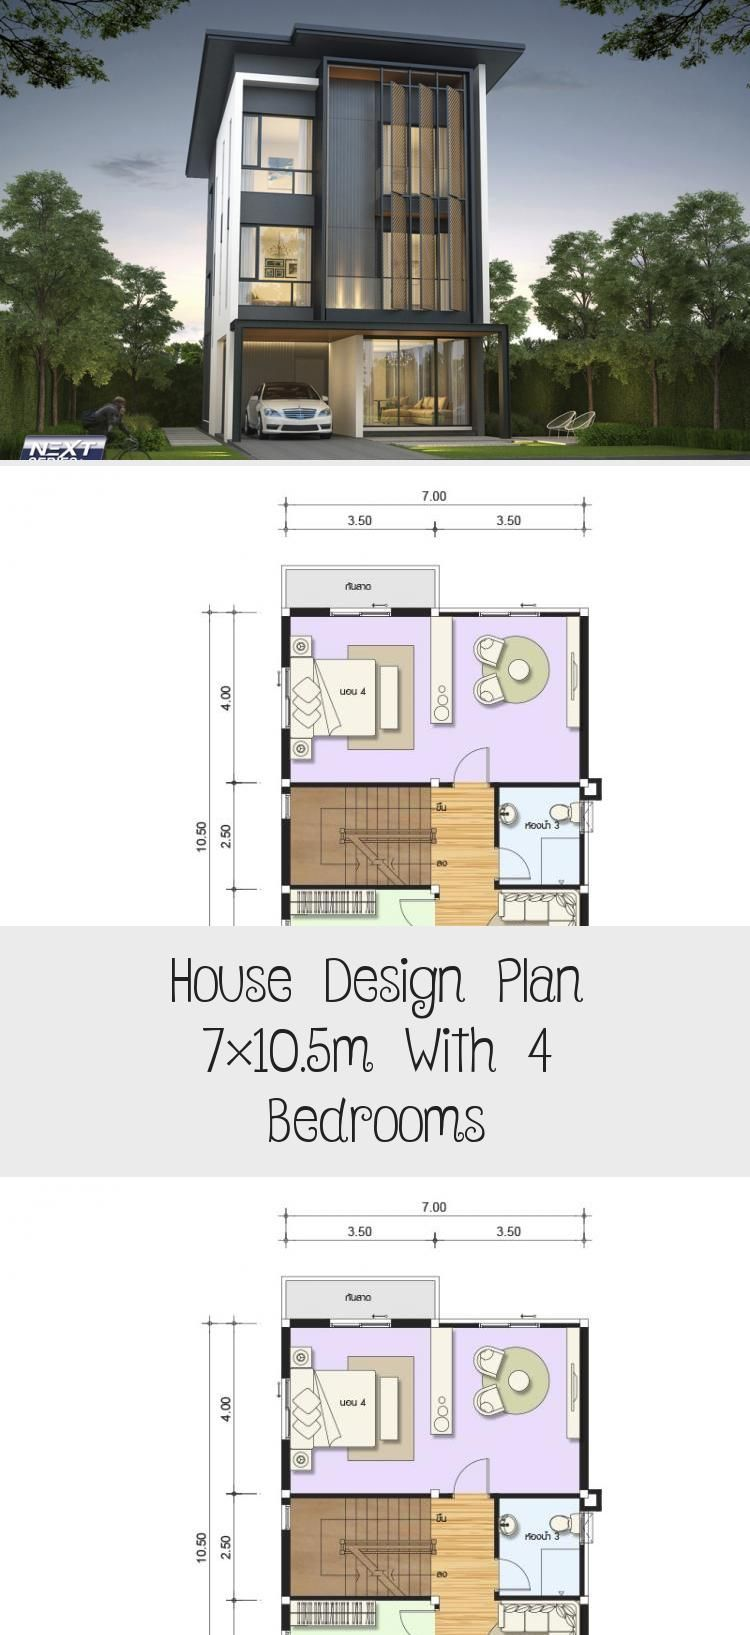 House Design Plan 7x10 5m With 4 Bedrooms Home Design With Plansearch Indianhousedesign House In 2020 Home Design Plans Kerala House Design Minimalist House Design